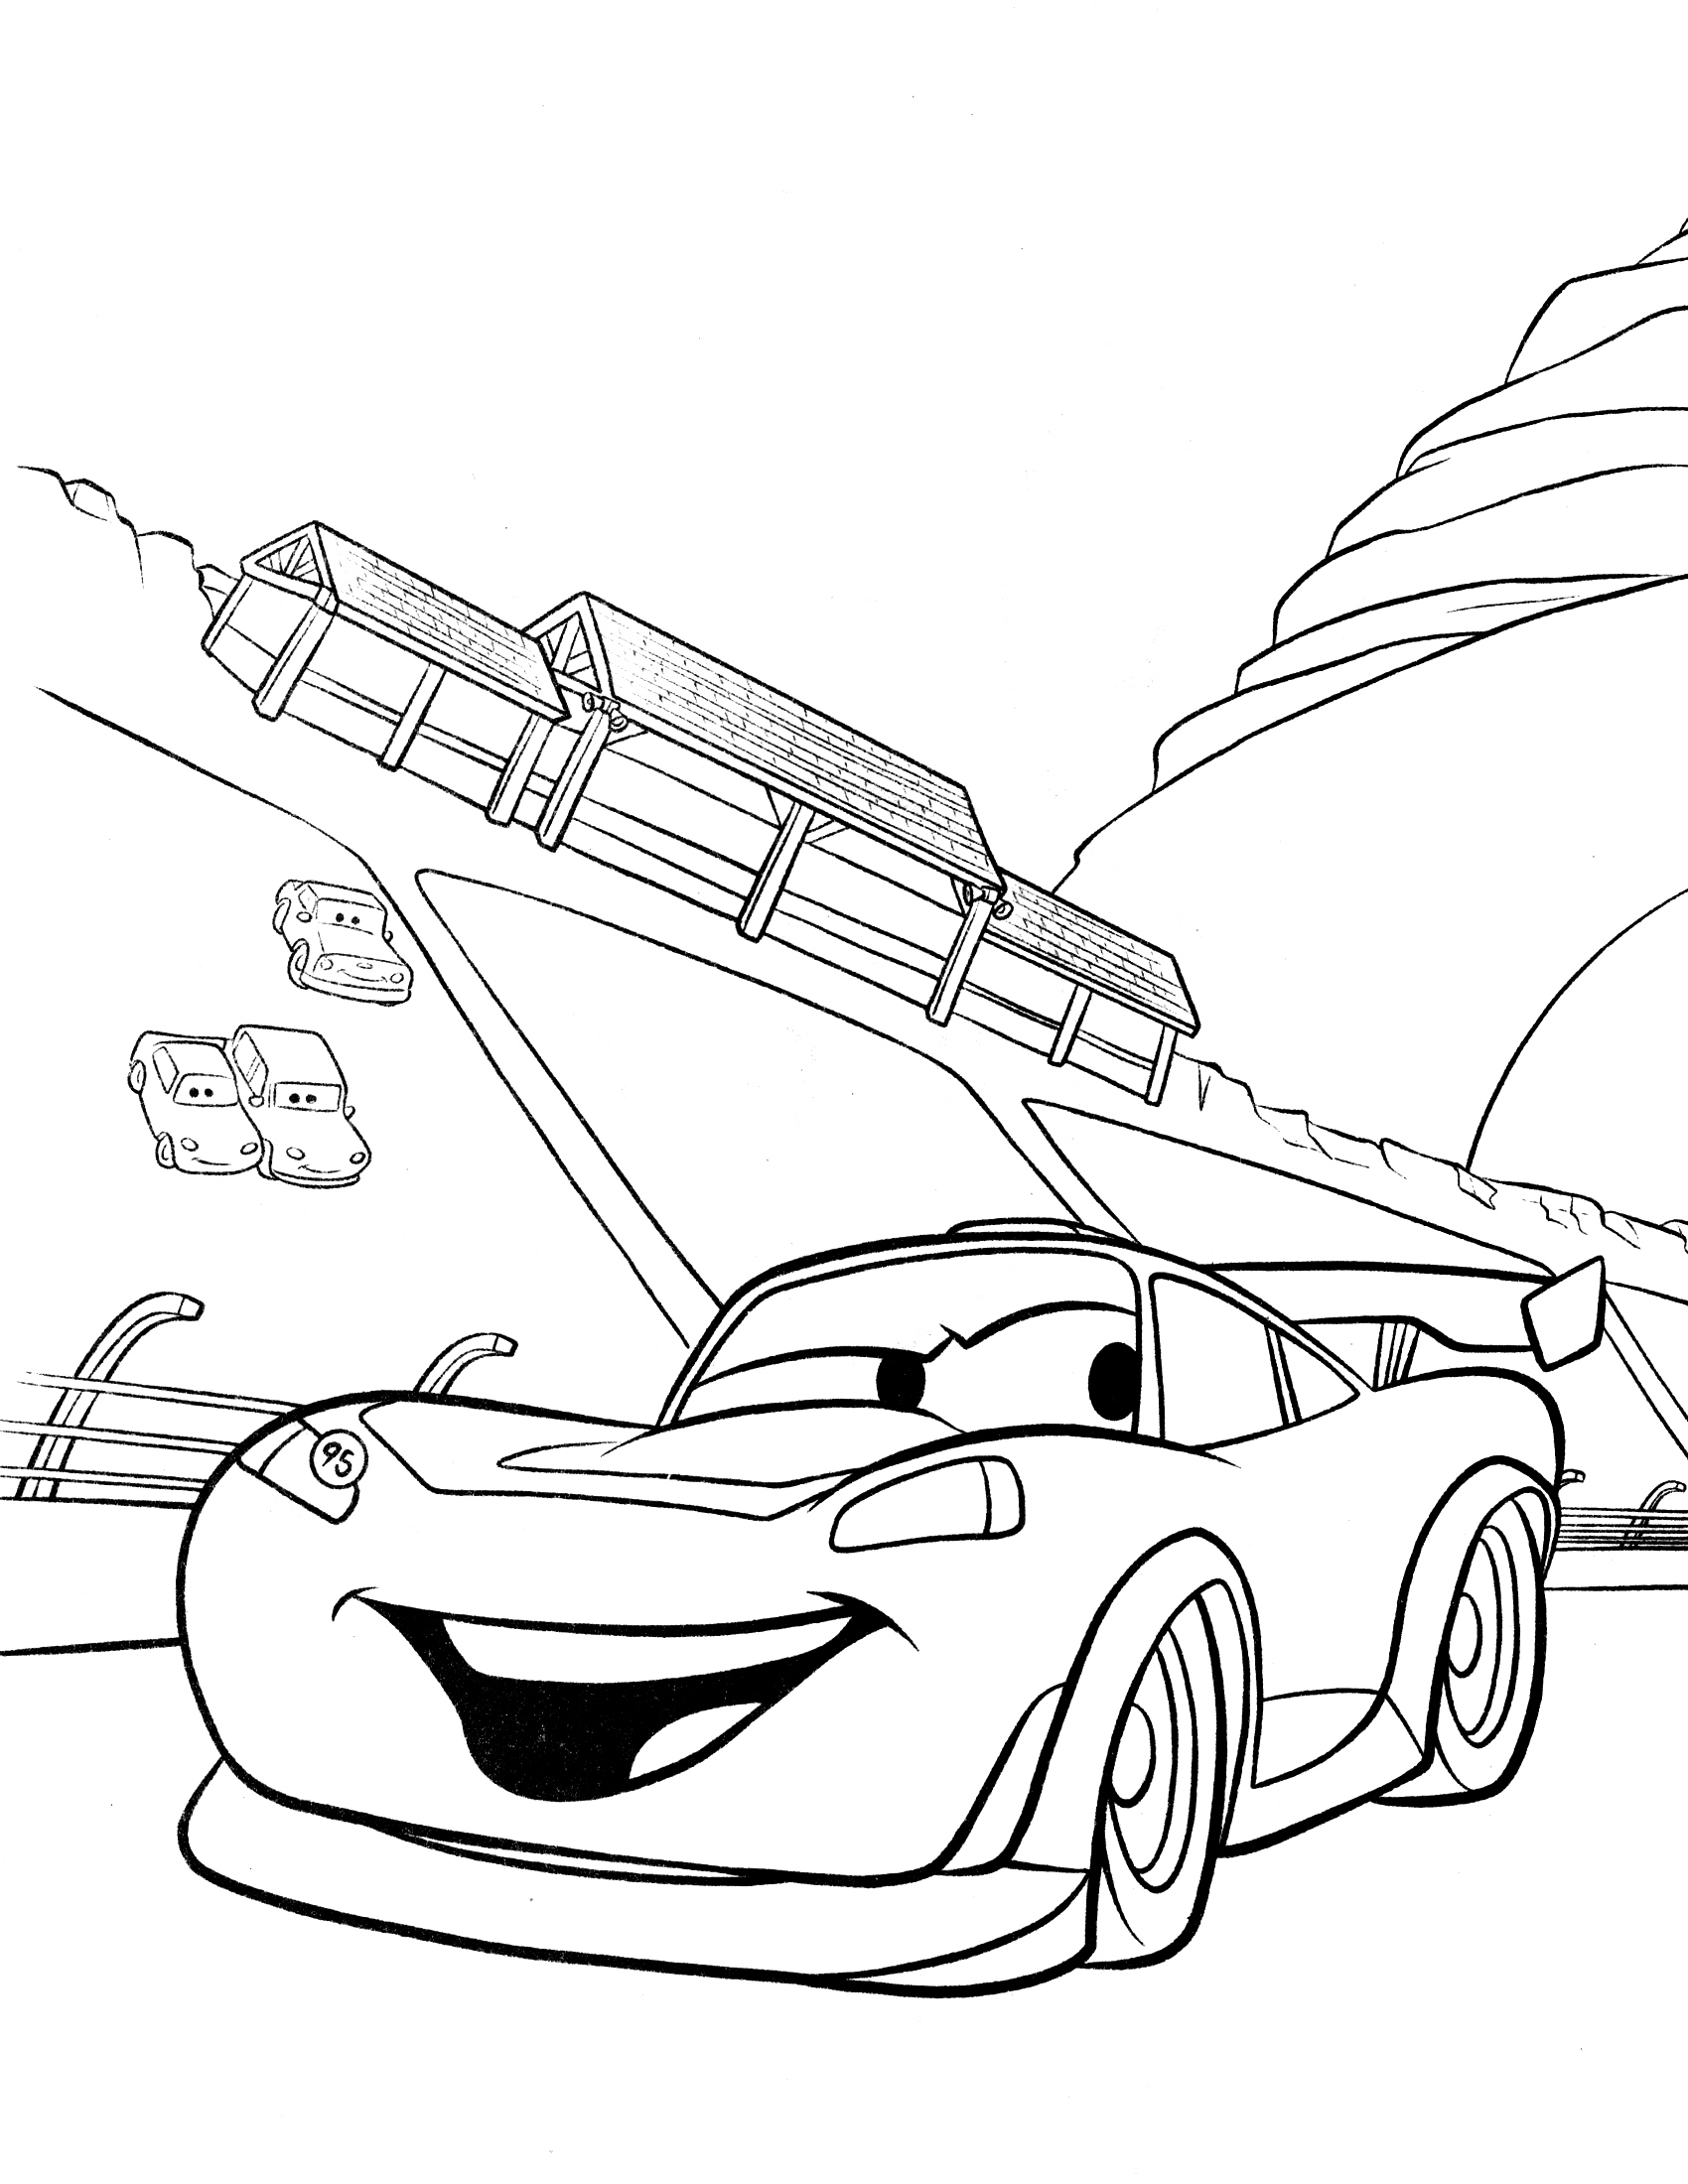 indy 500 coloring pages awesome indy 500 race car coloring pages top free pages 500 indy coloring